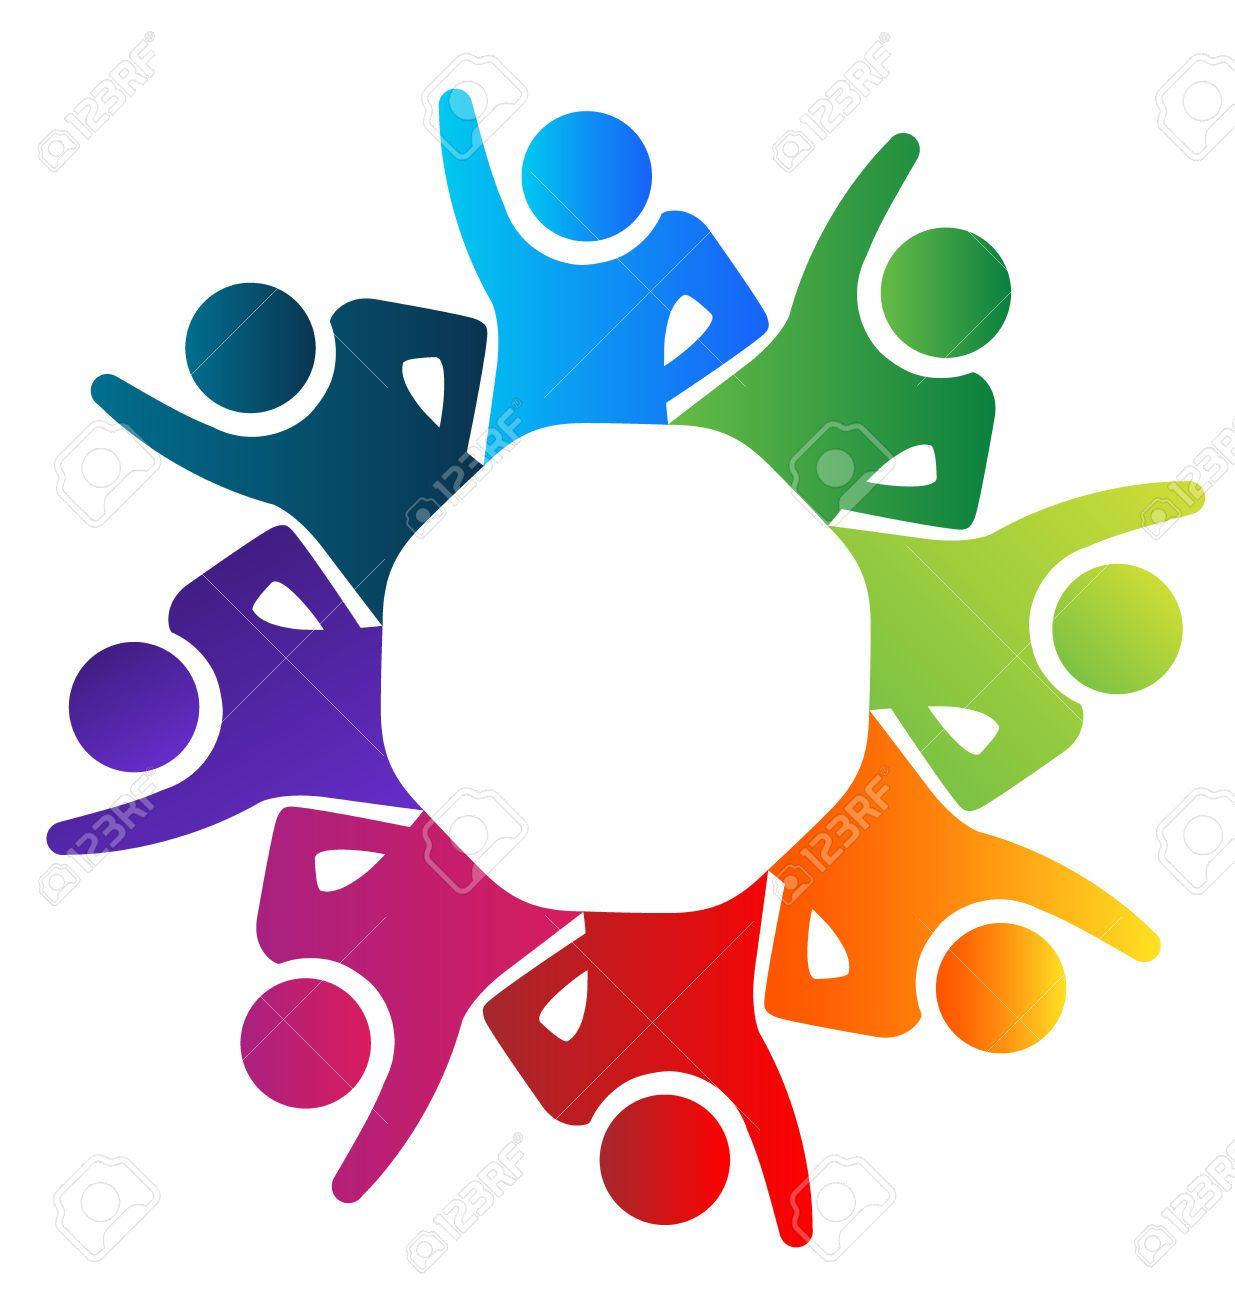 Teamwork United Voluntary People Vector Image Royalty Free Cliparts ...